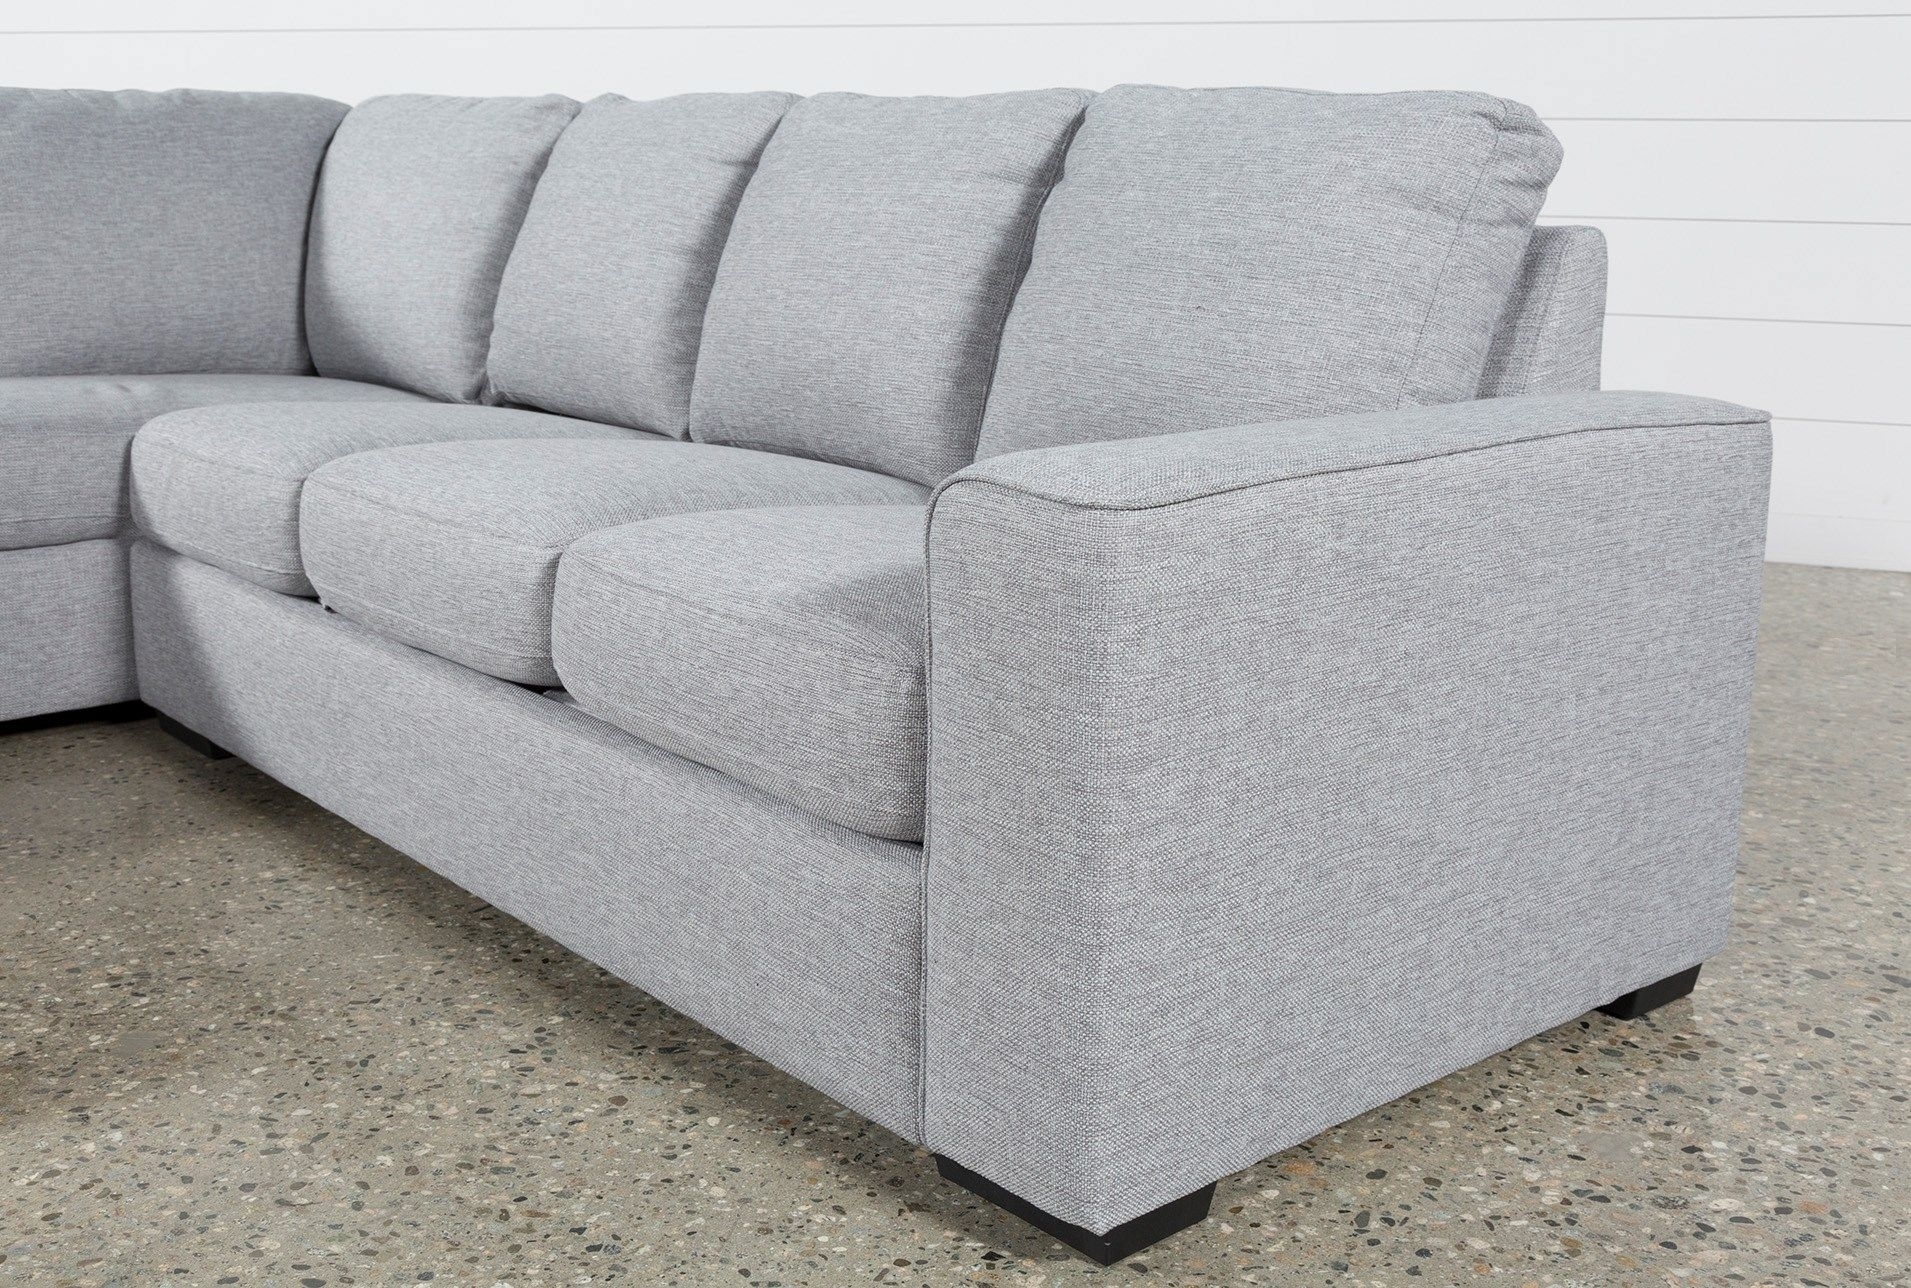 Lucy Grey 2 Piece Sectional W/laf Chaise | Gray And Room Throughout Arrowmask 2 Piece Sectionals With Laf Chaise (Image 10 of 25)